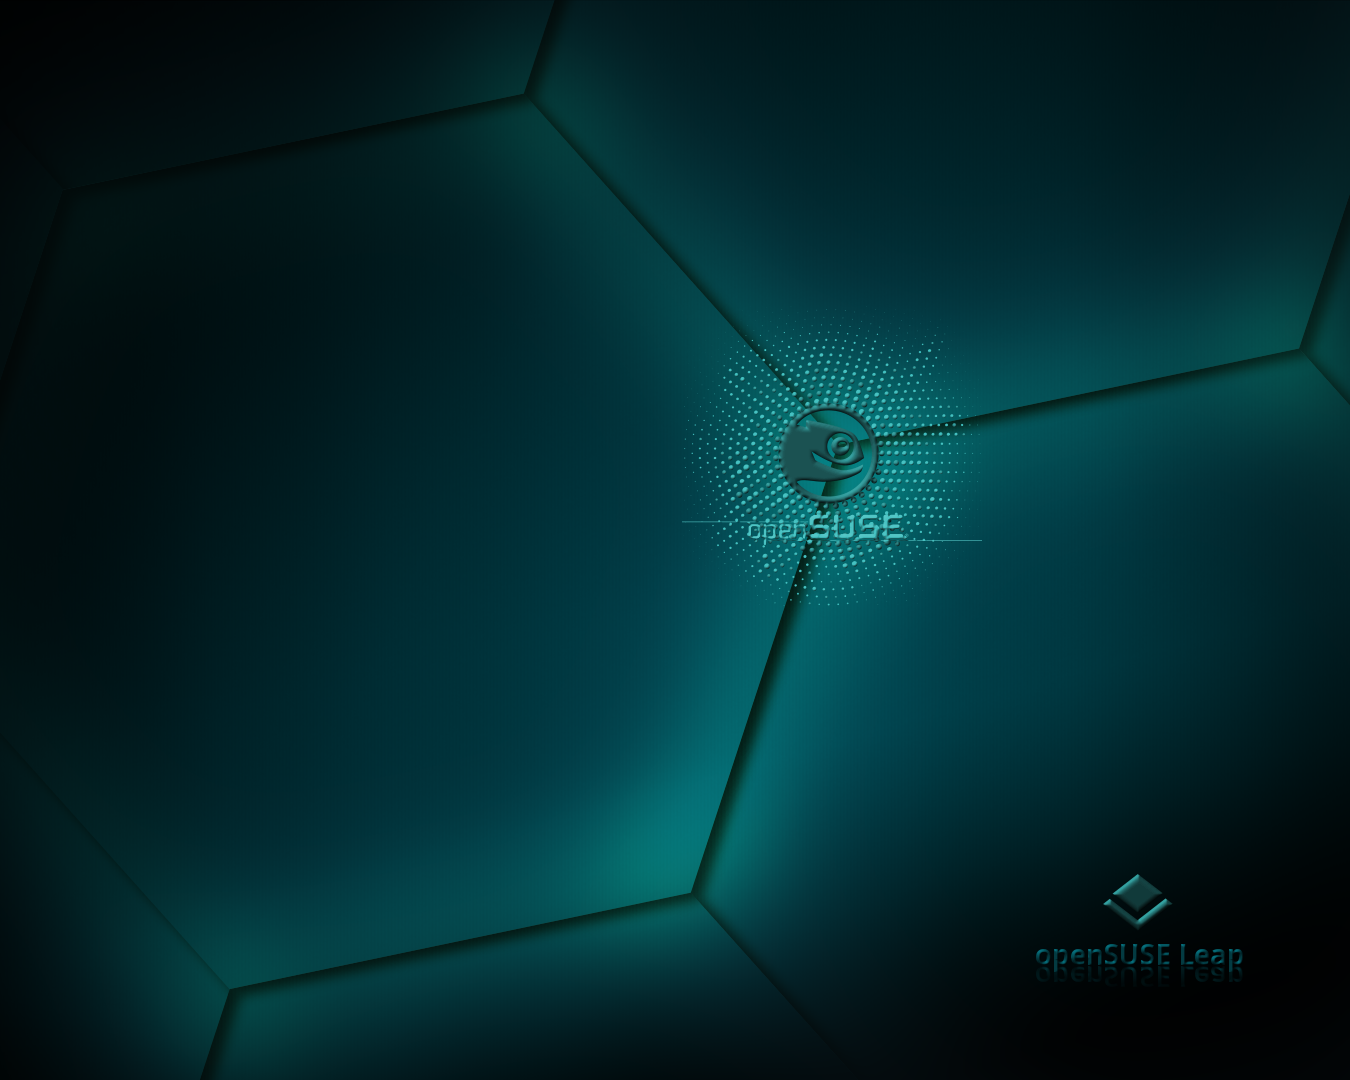 1350x1080 openSUSE-Leap Wallpapers - linux-apps.com